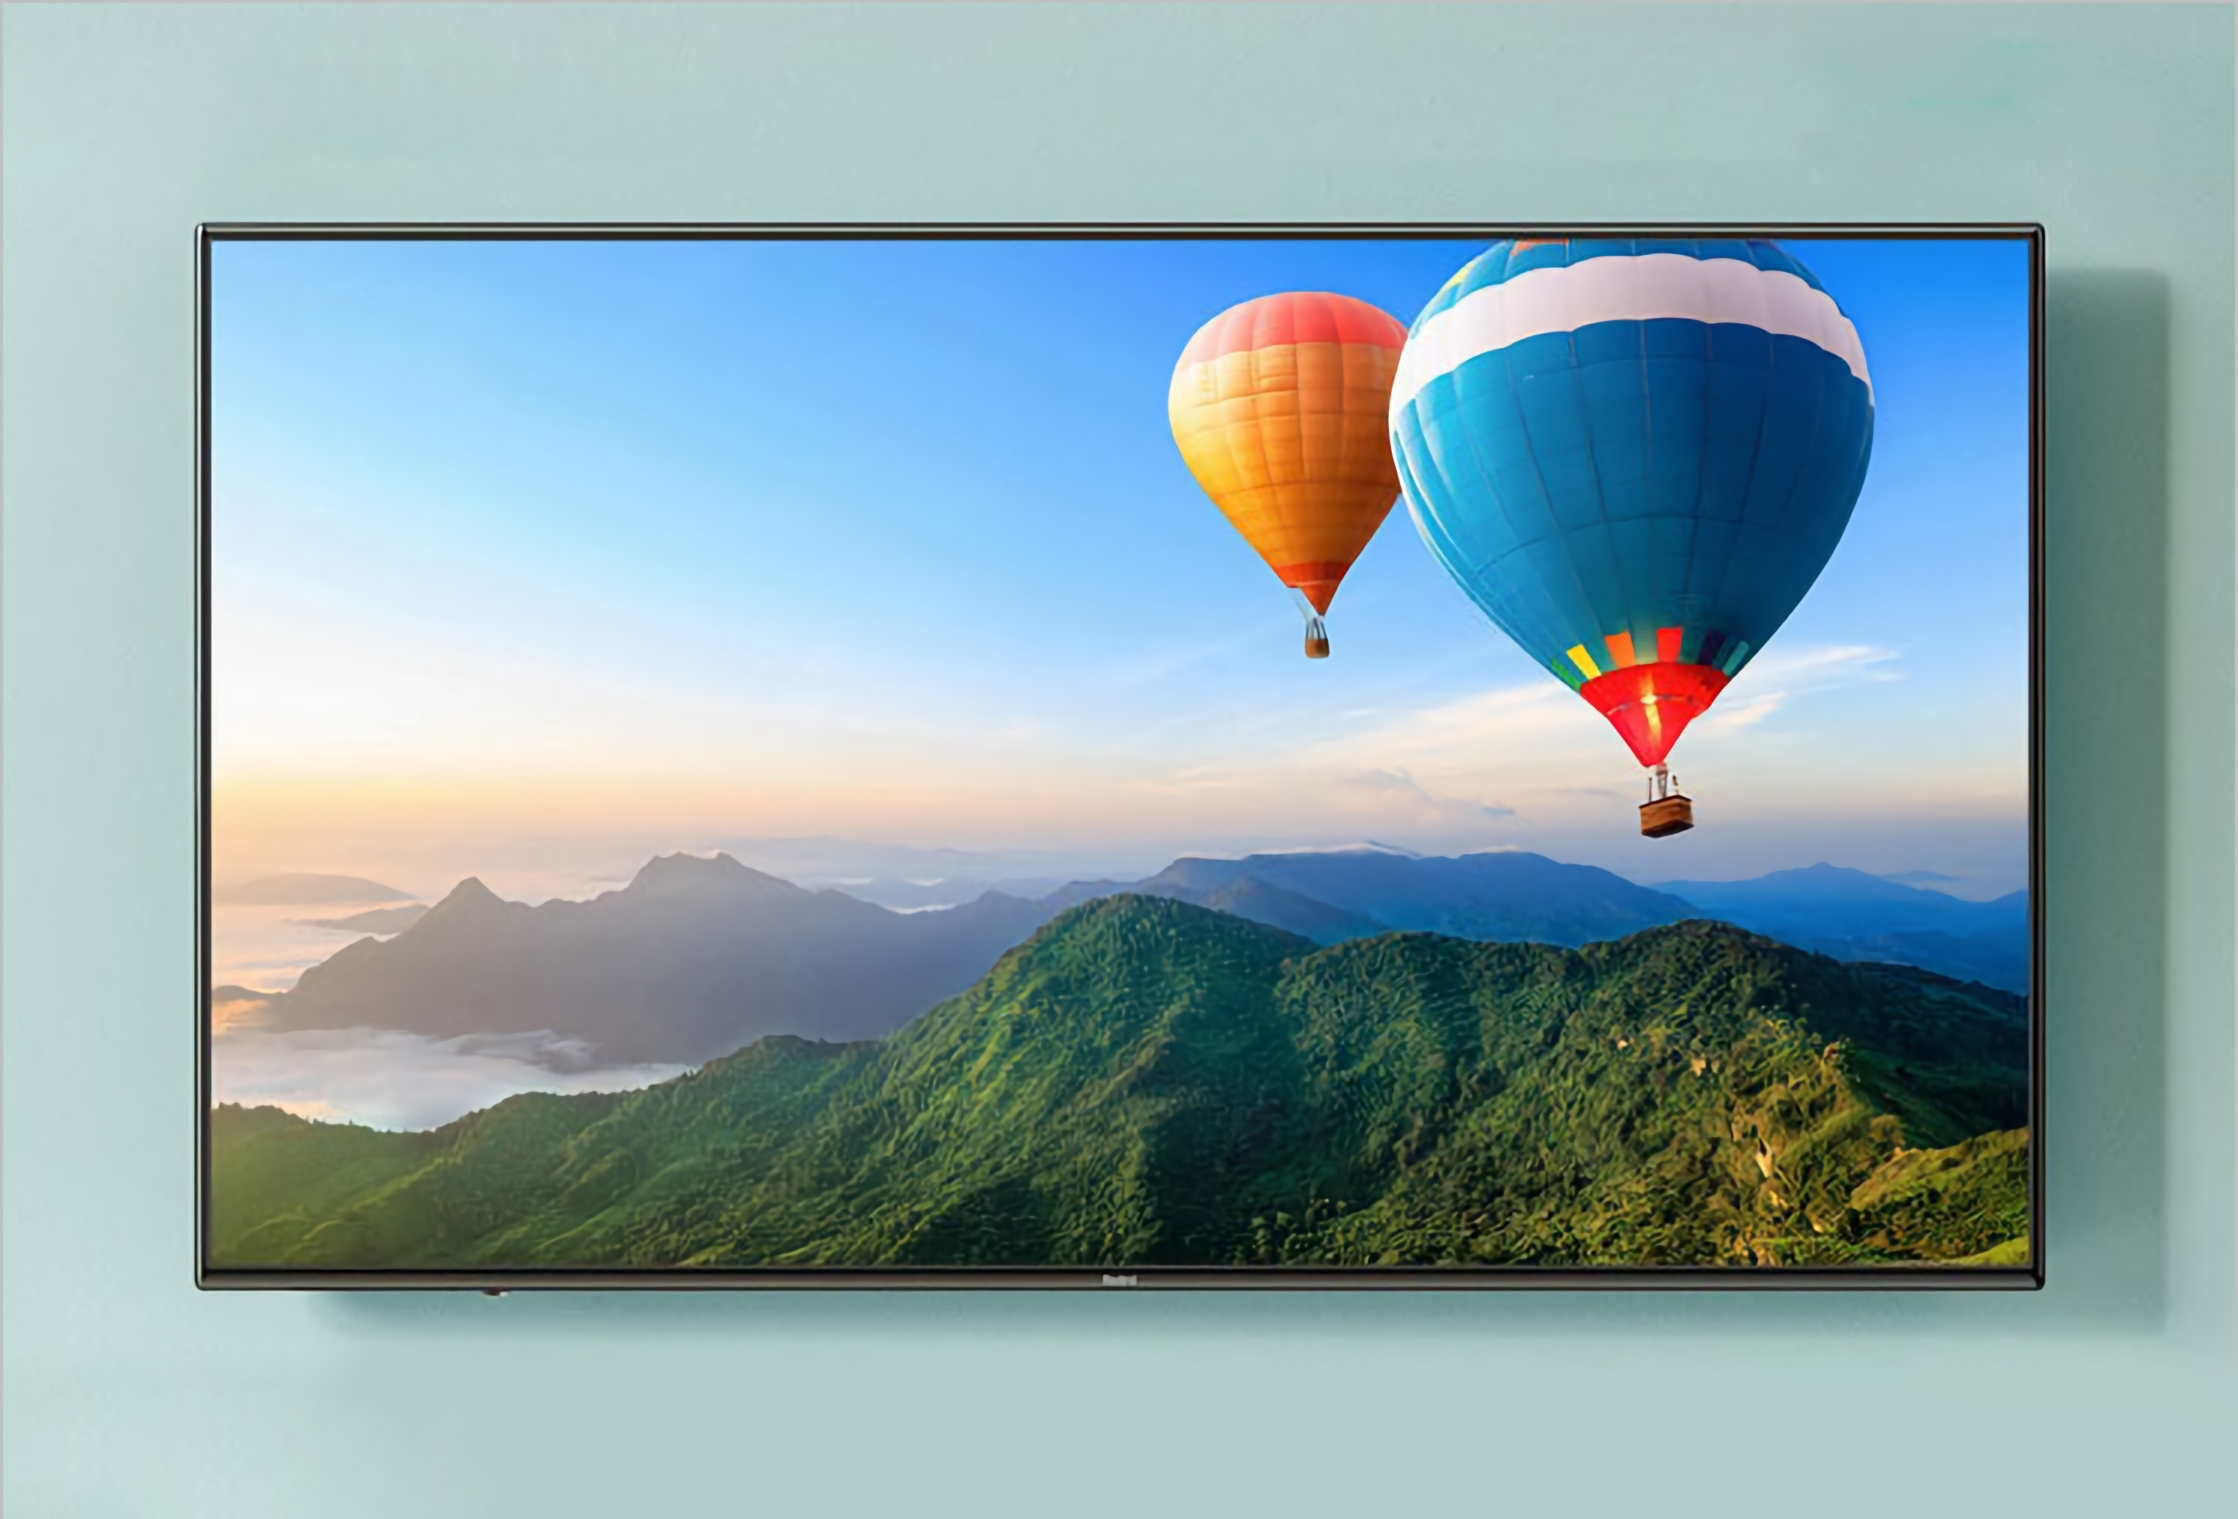 Redmi Smart TV A50: 50-дюймовый 4K-телевизор за $235